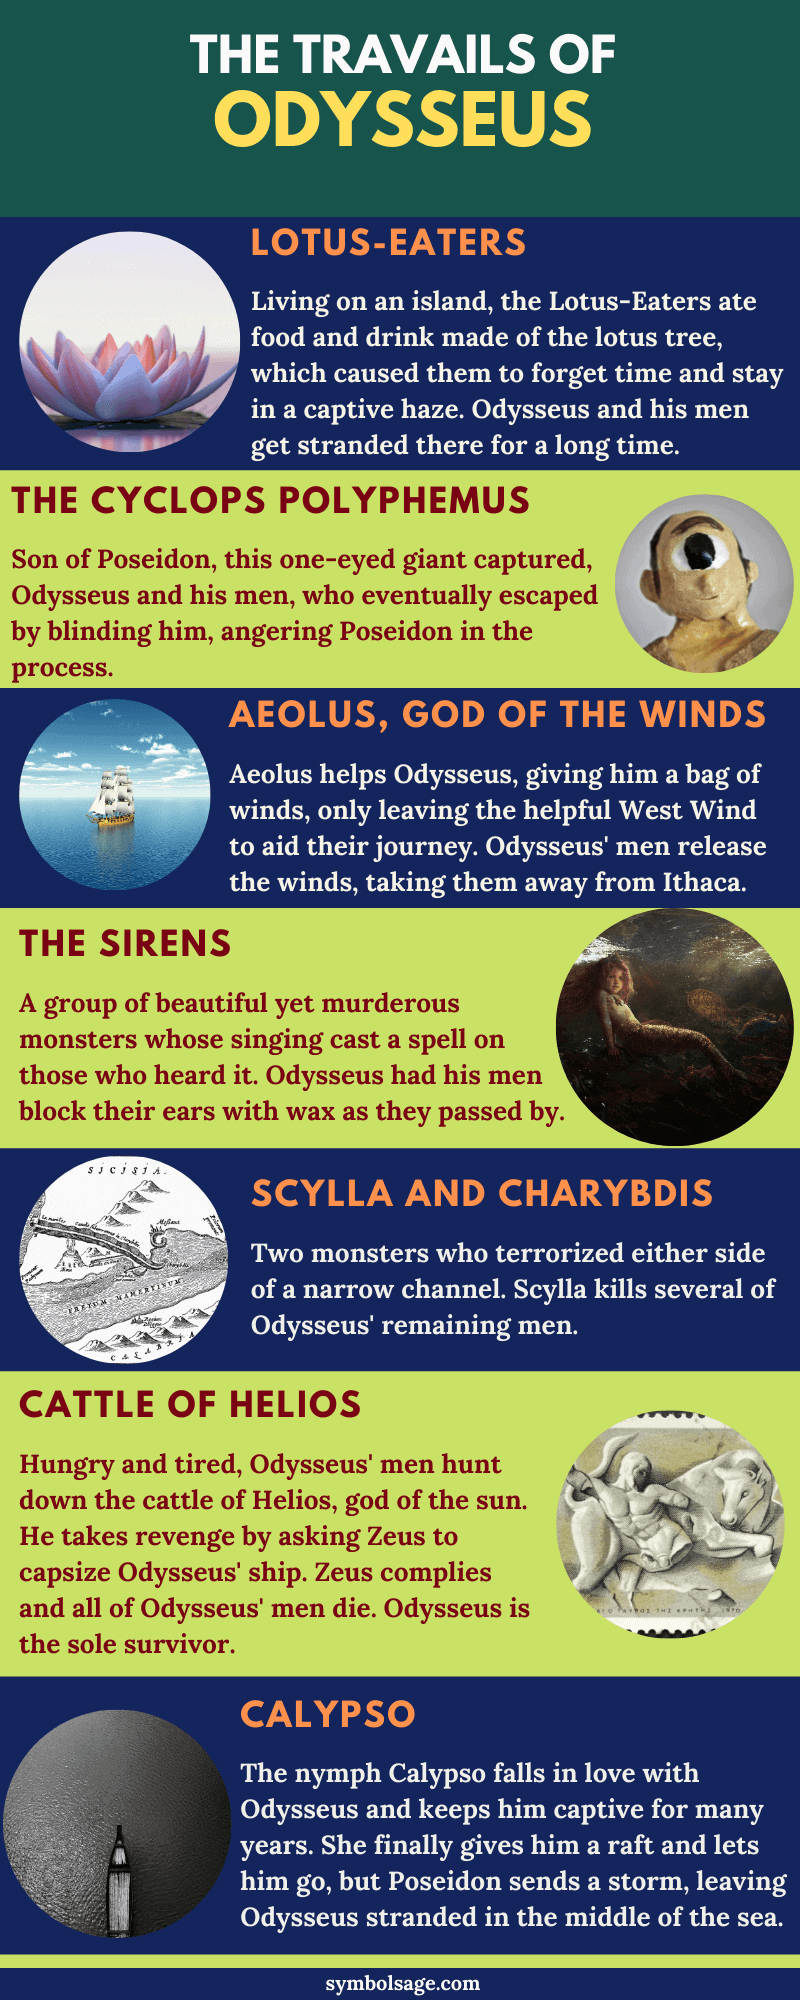 The wanderings and trials of Odysseus